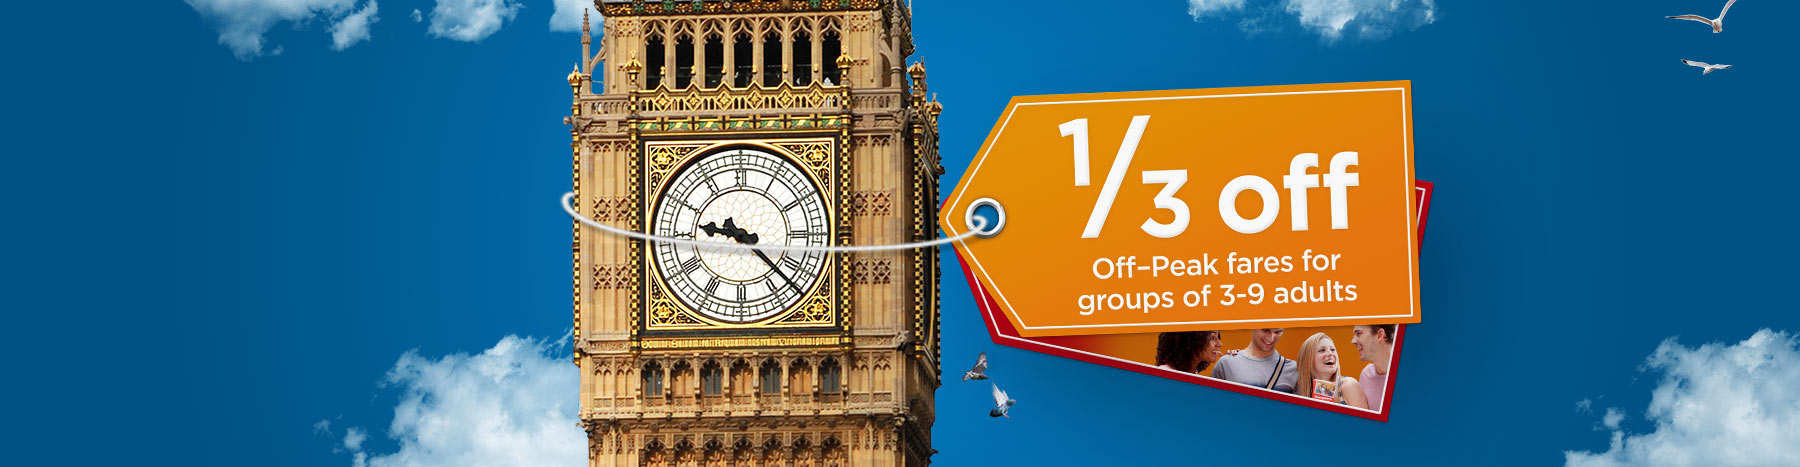 Discount on off-peak fares for groups of 3-9 adults